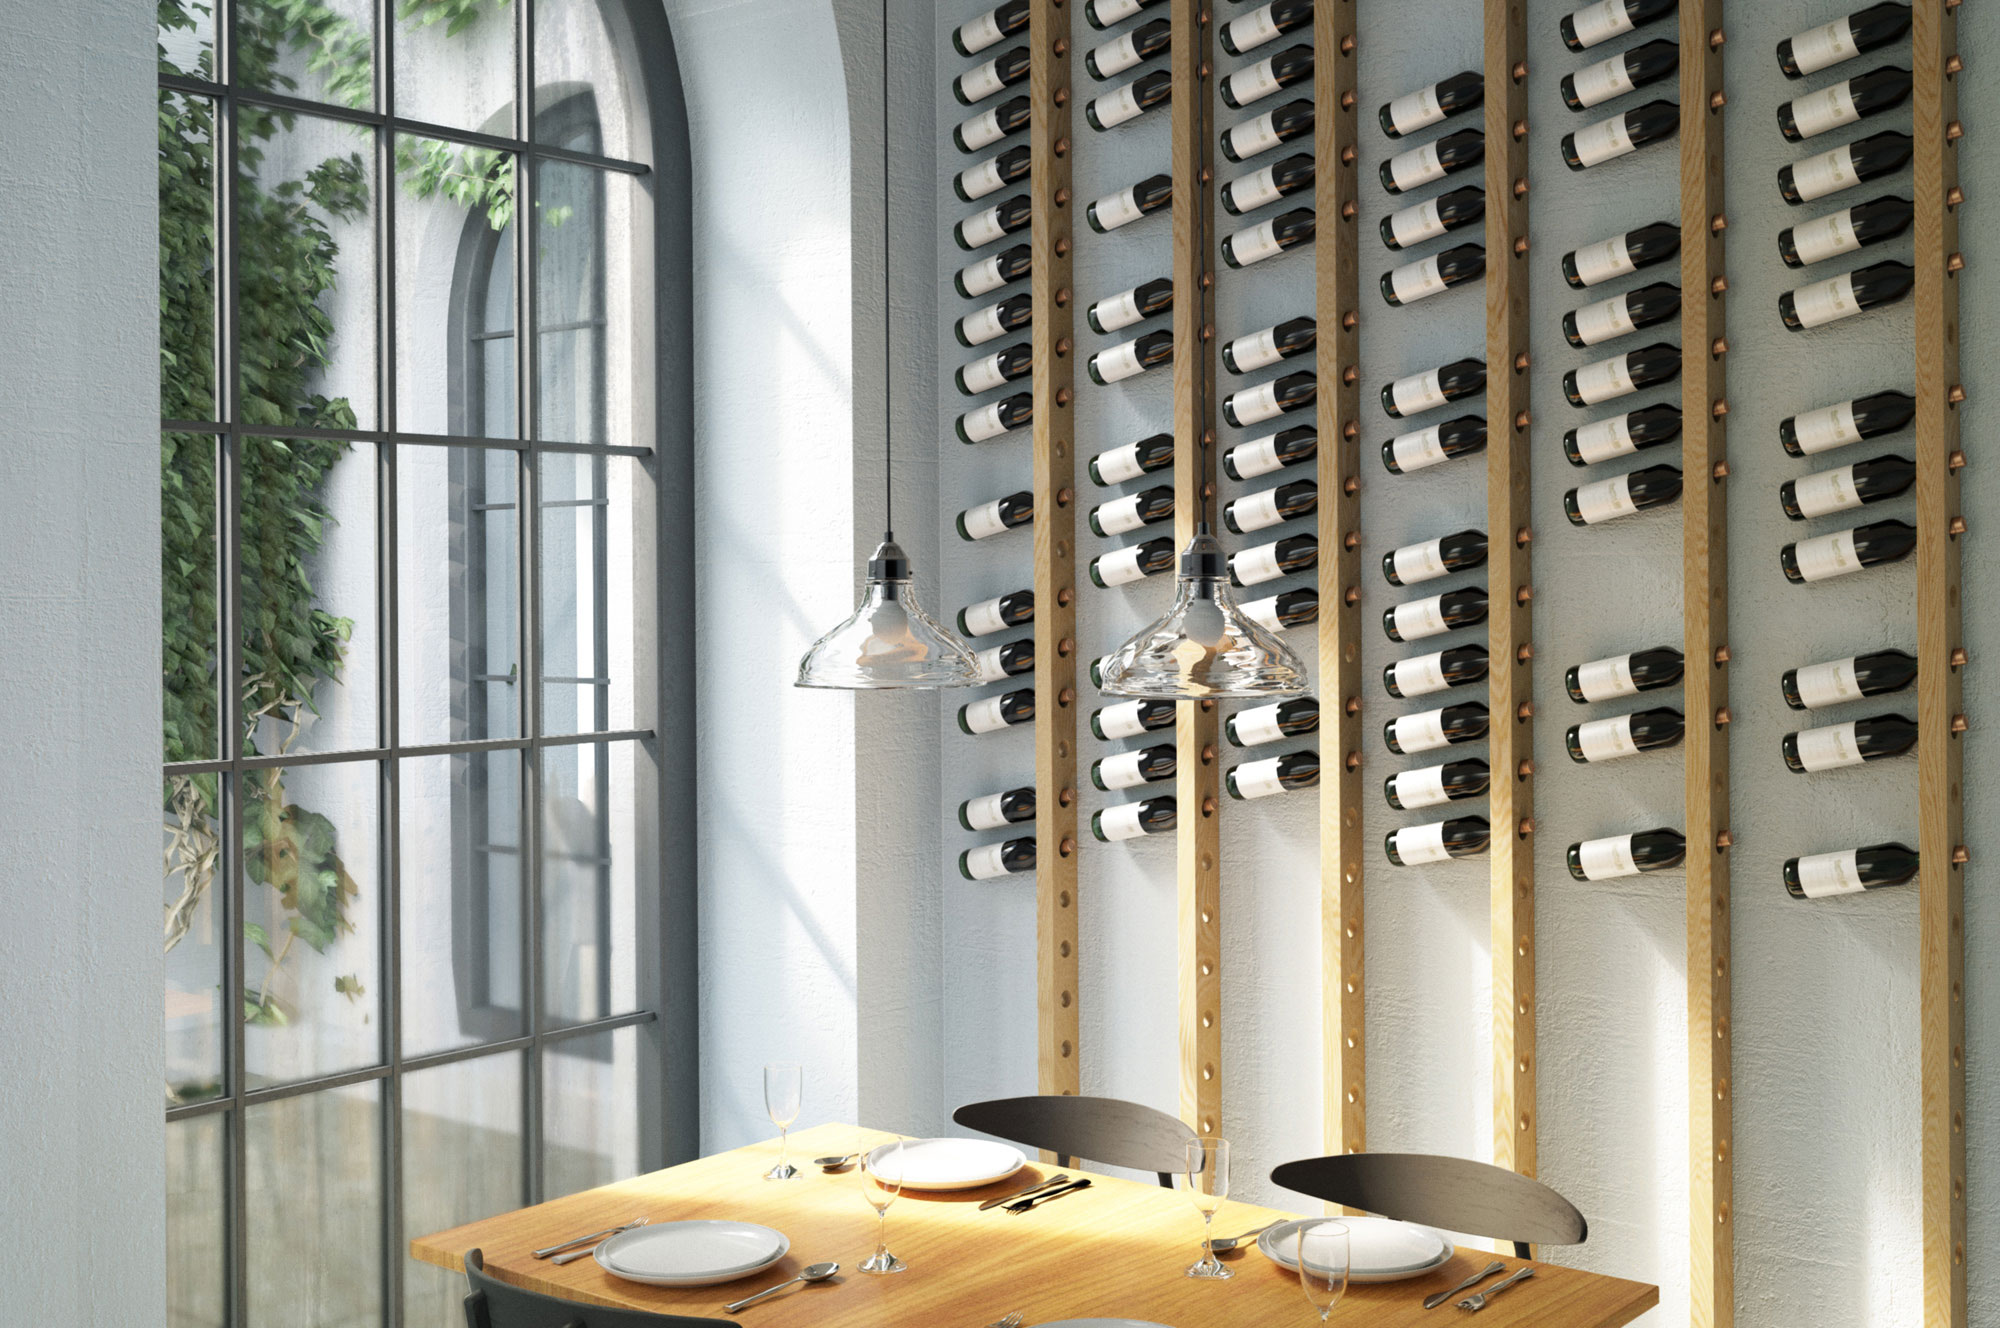 Product visualization: wine racks in an interior